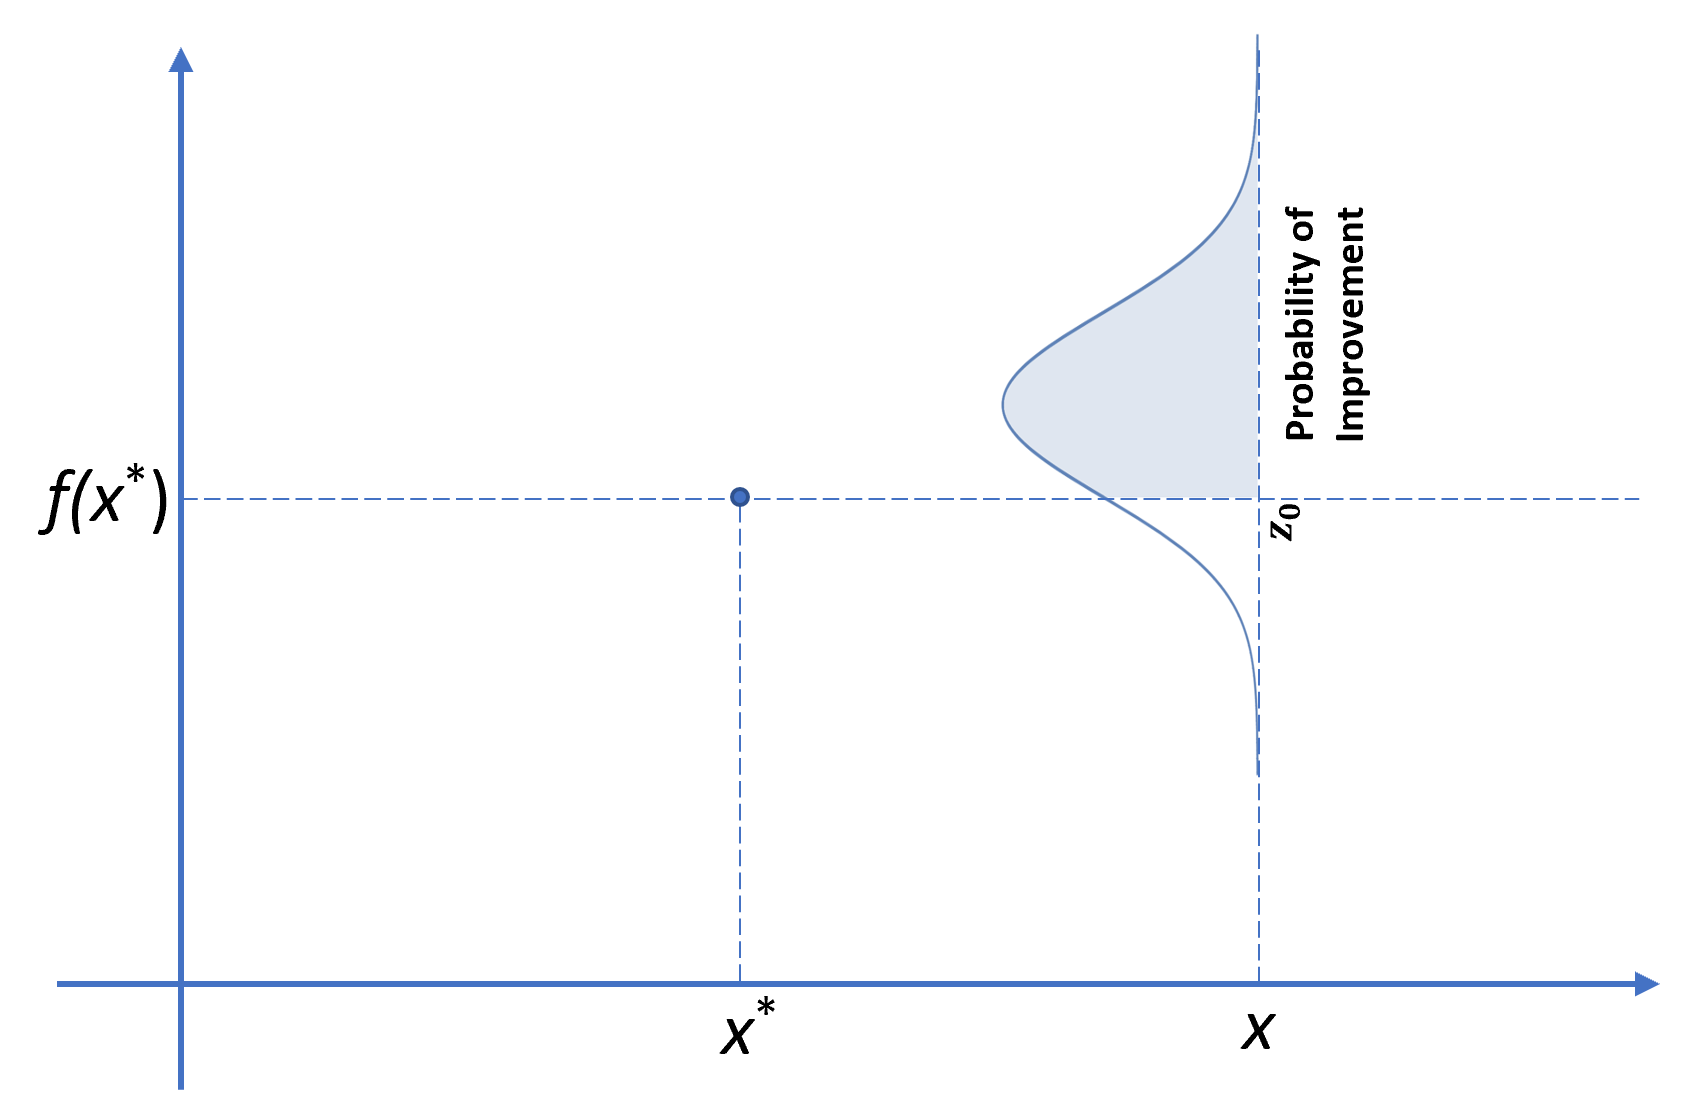 Probability of Improvement function